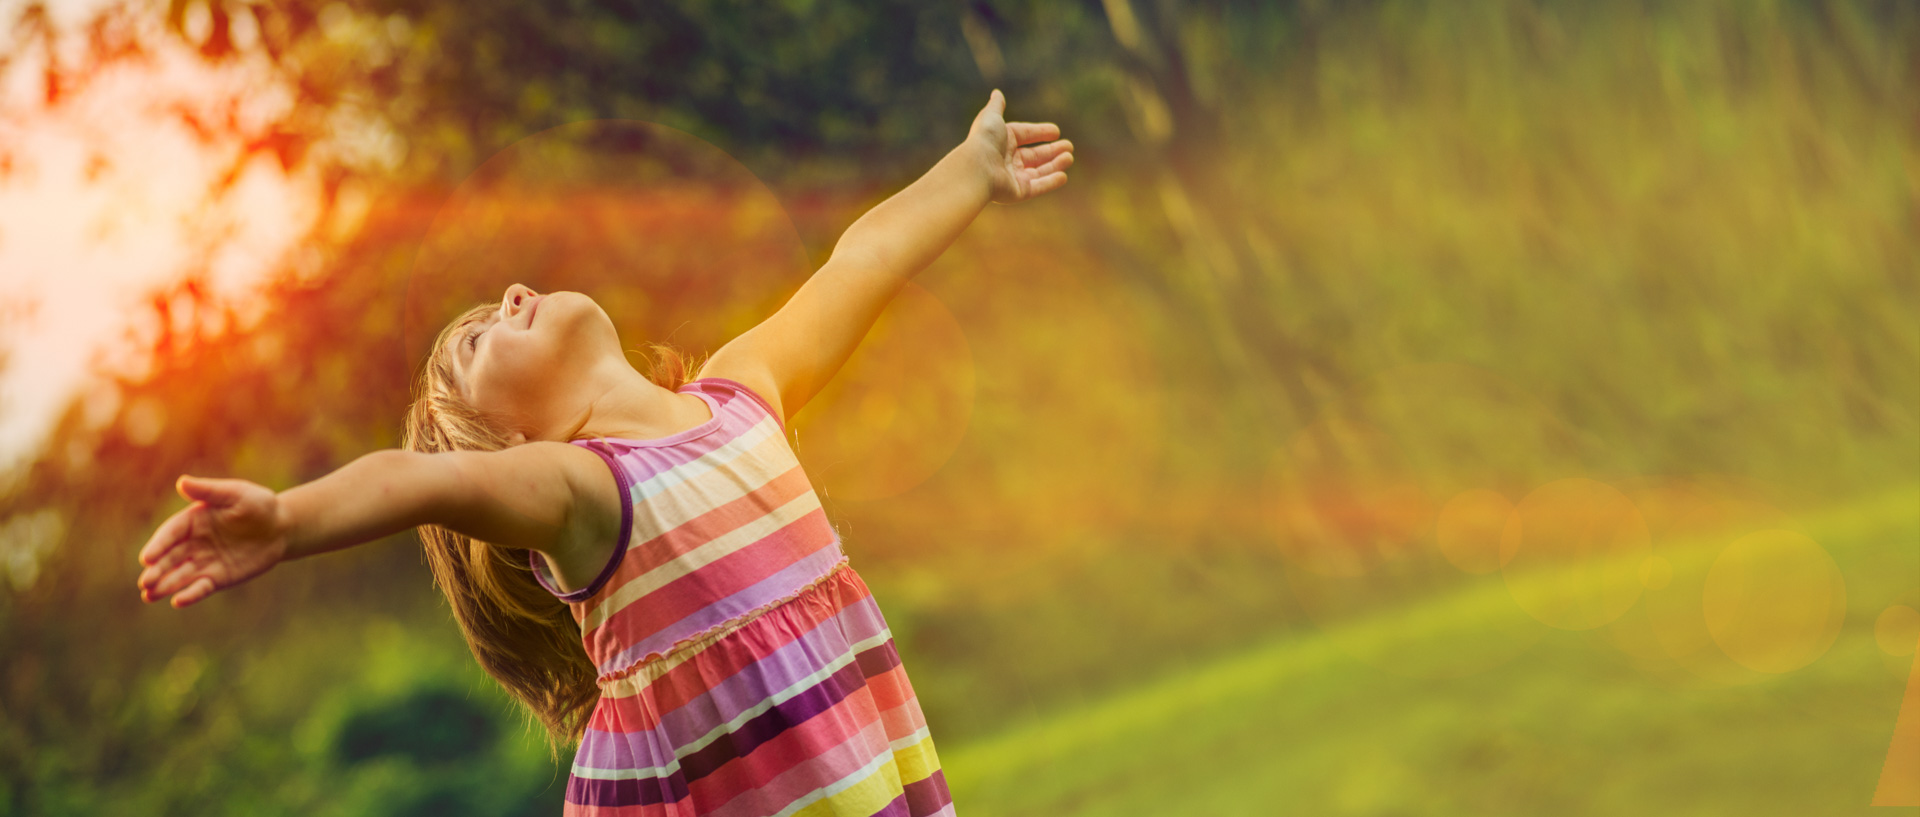 Beautiful girl enjoying the sun with outstretched arms